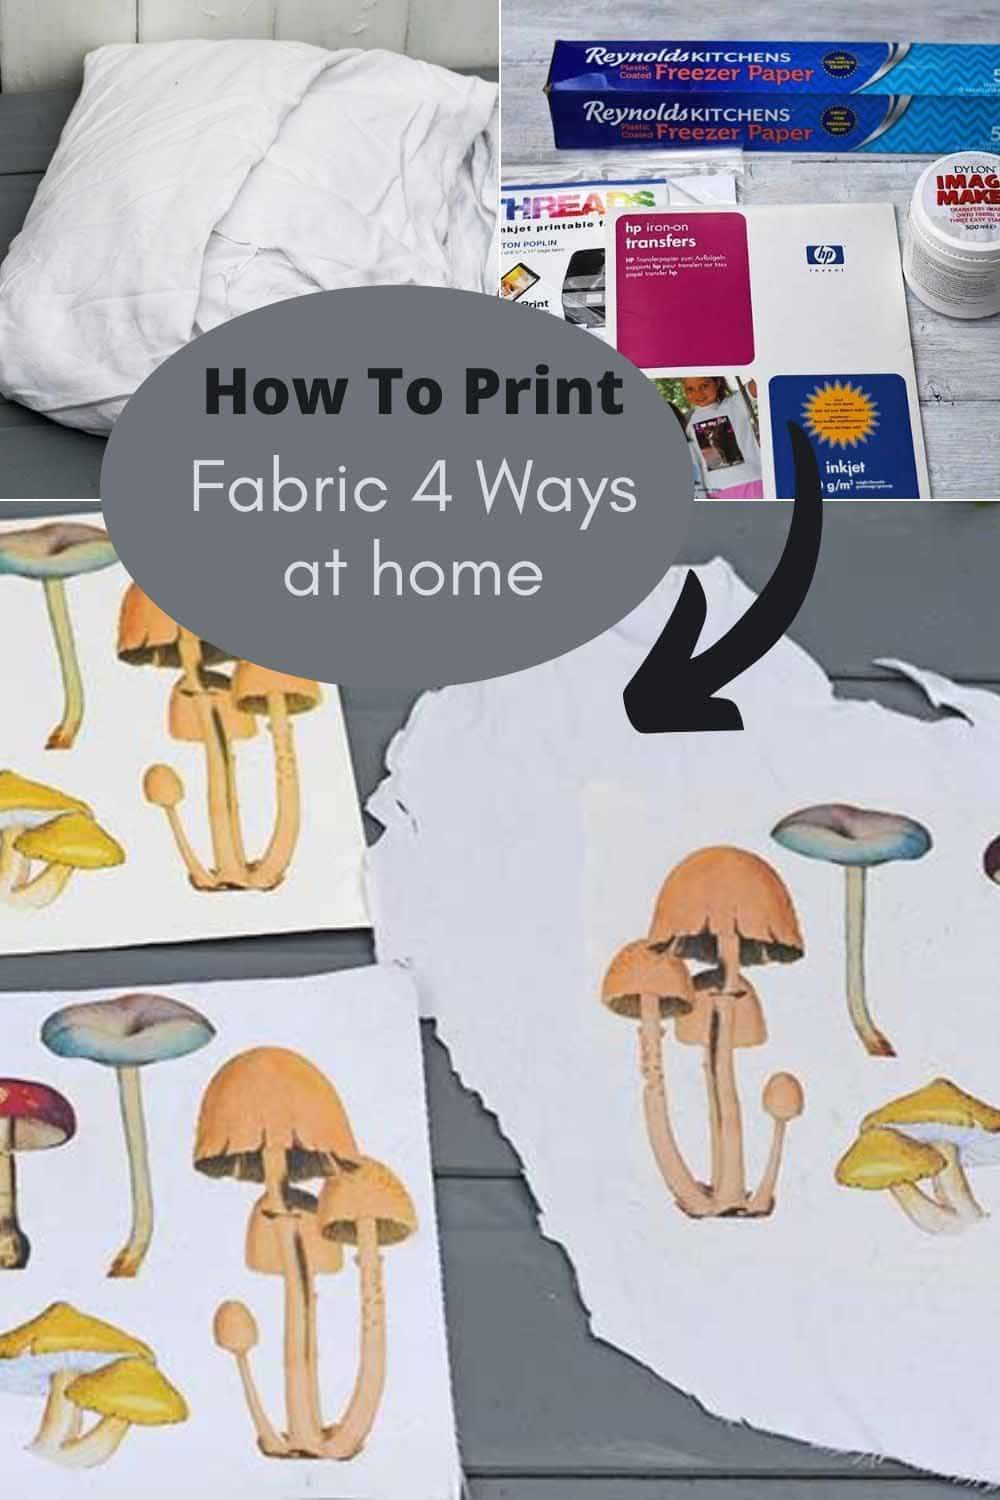 How to print on fabric at home